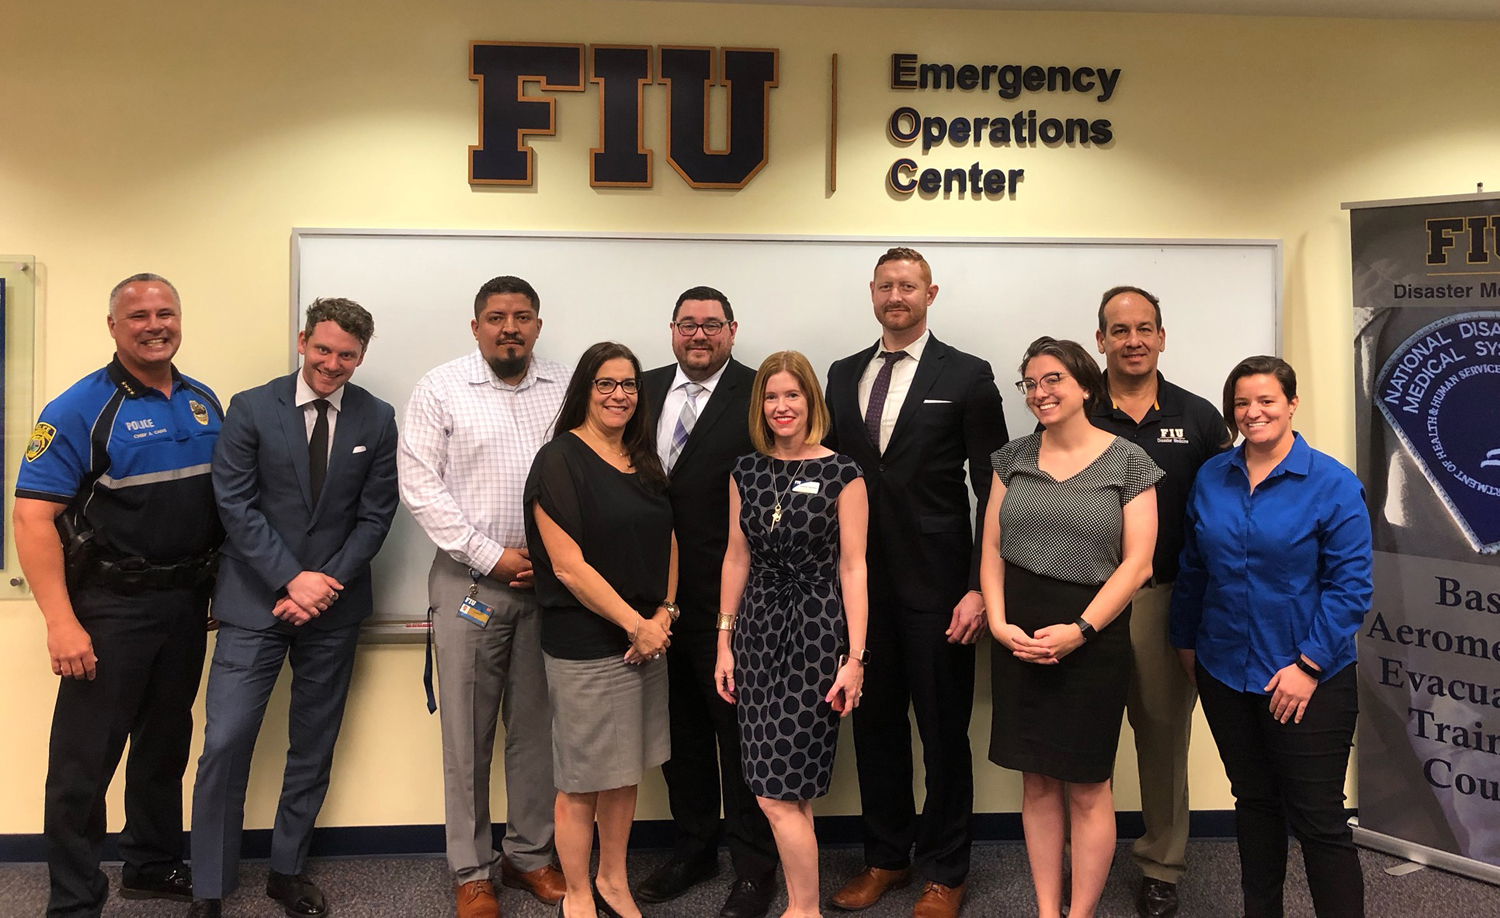 VEP and Florida International University Joins Forces